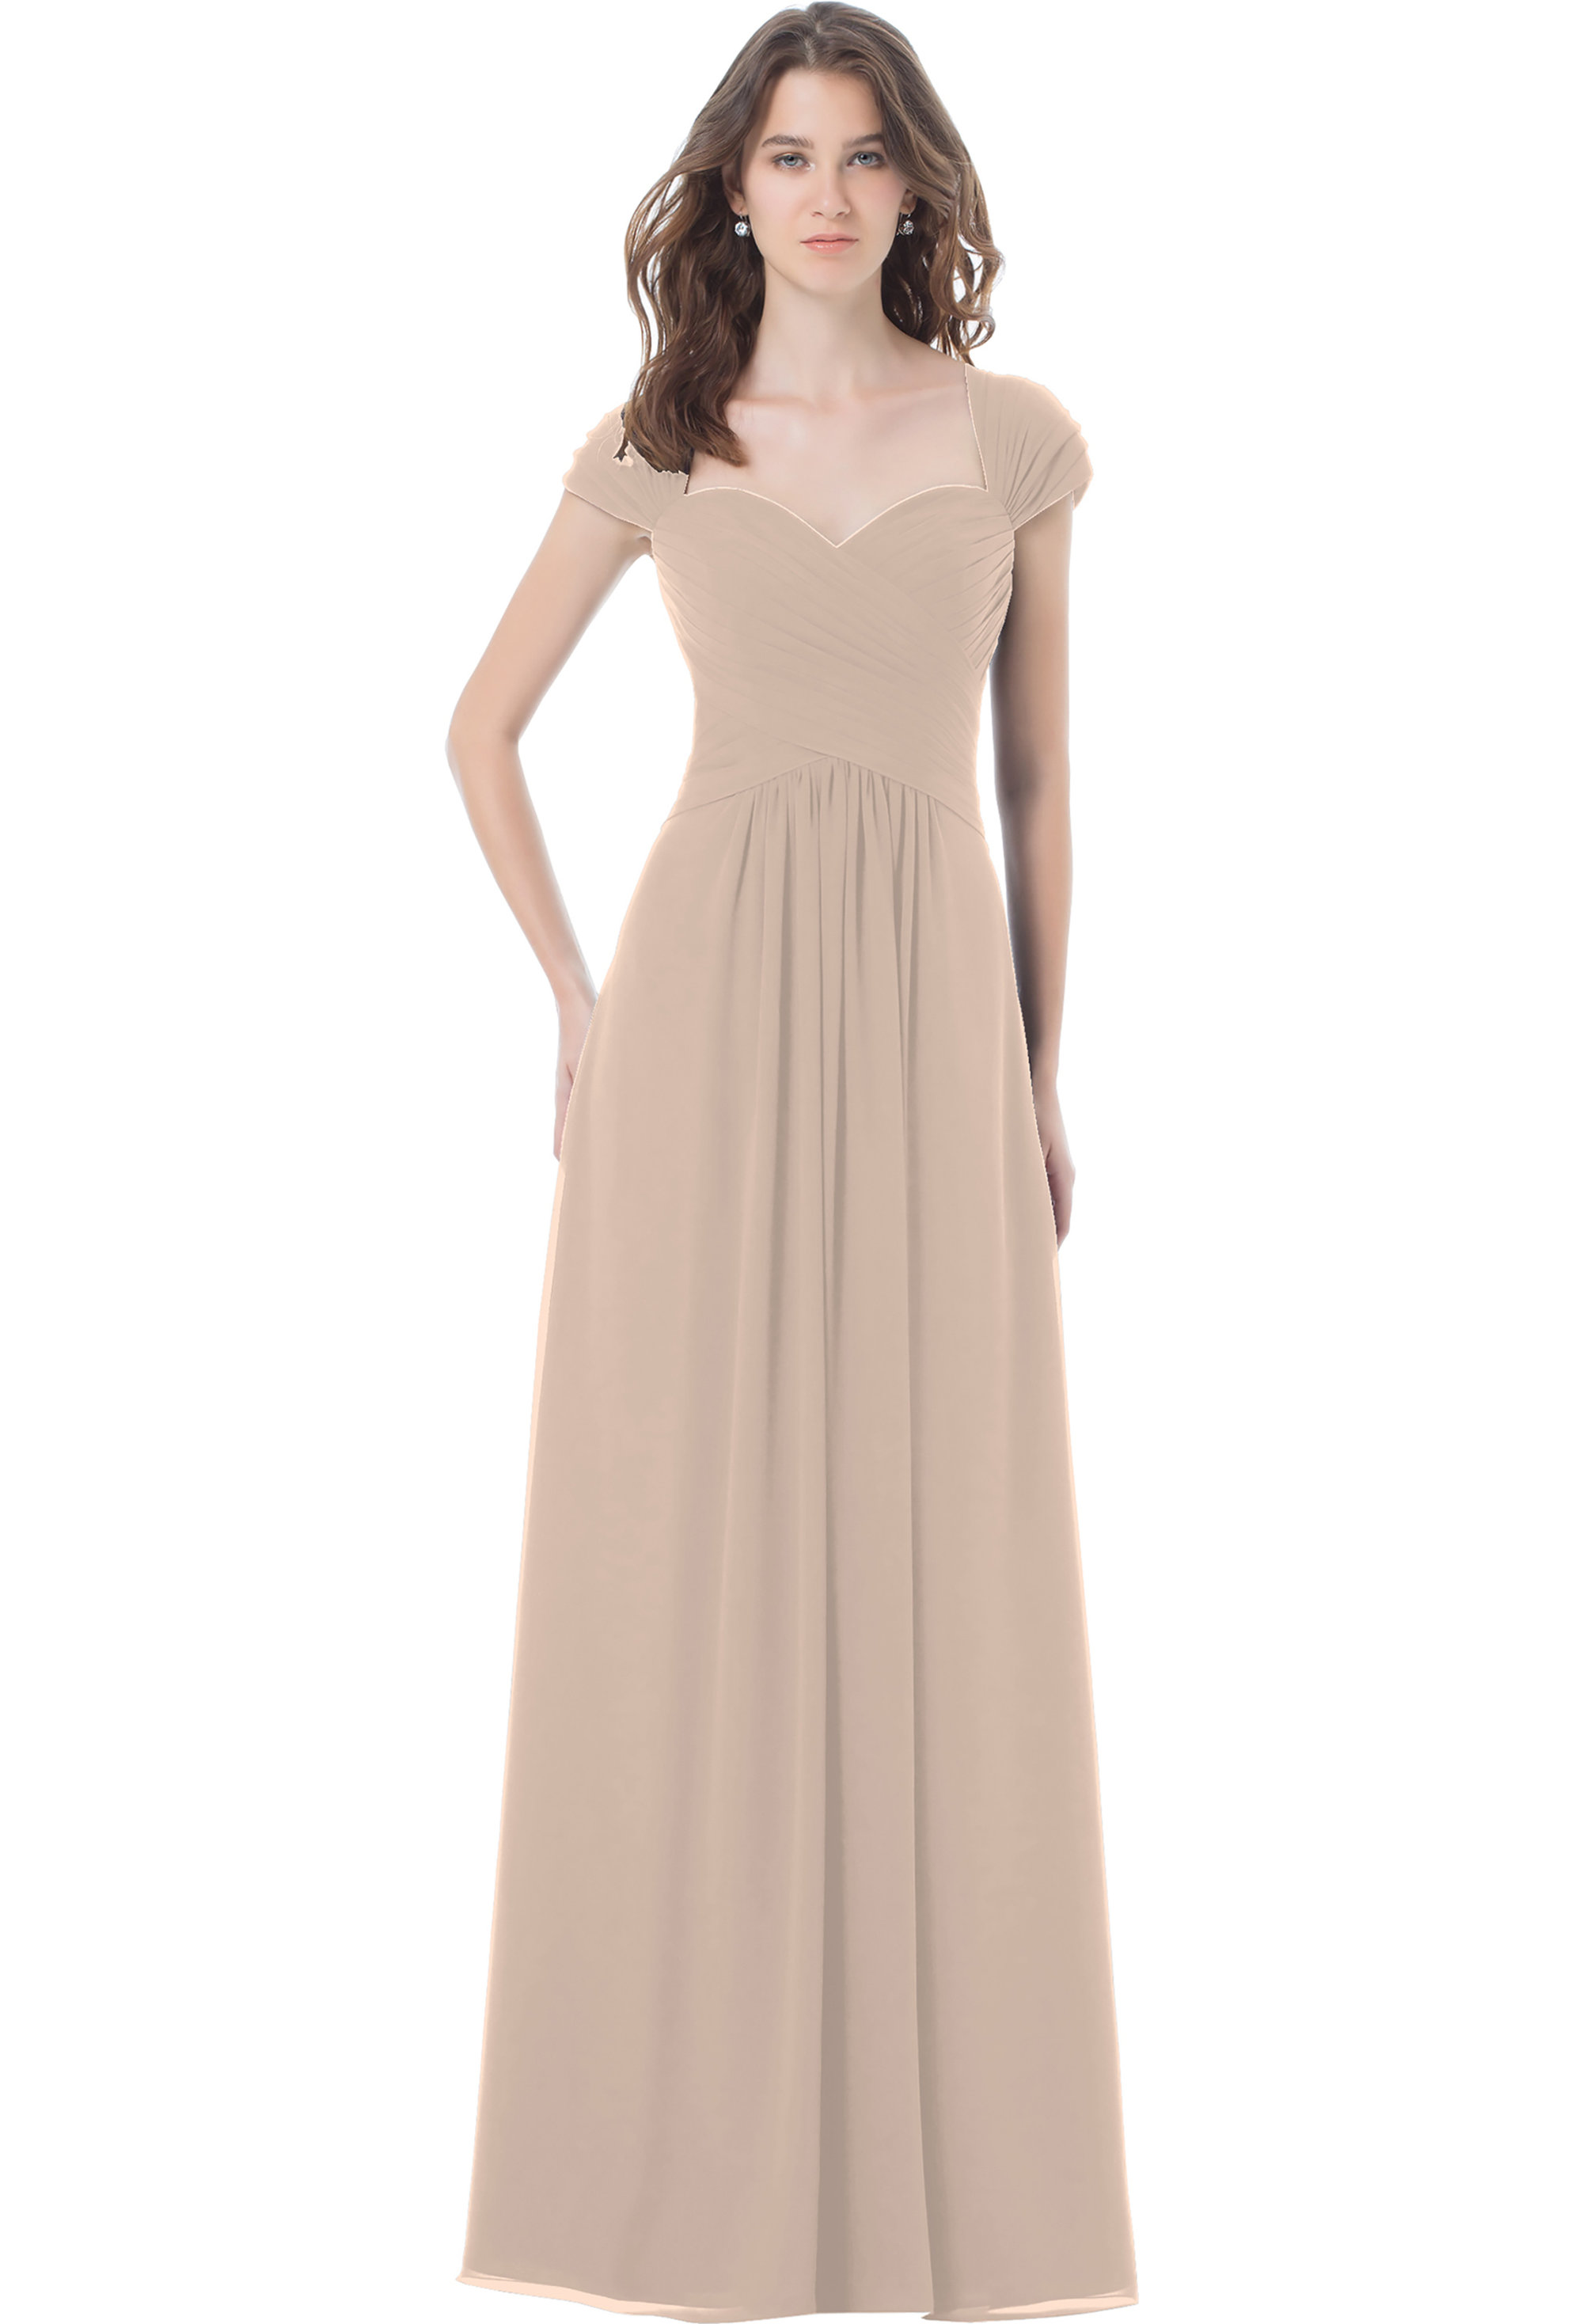 Bill Levkoff SHELL PINK Chiffon Sweetheart A-line gown, $230.00 Front